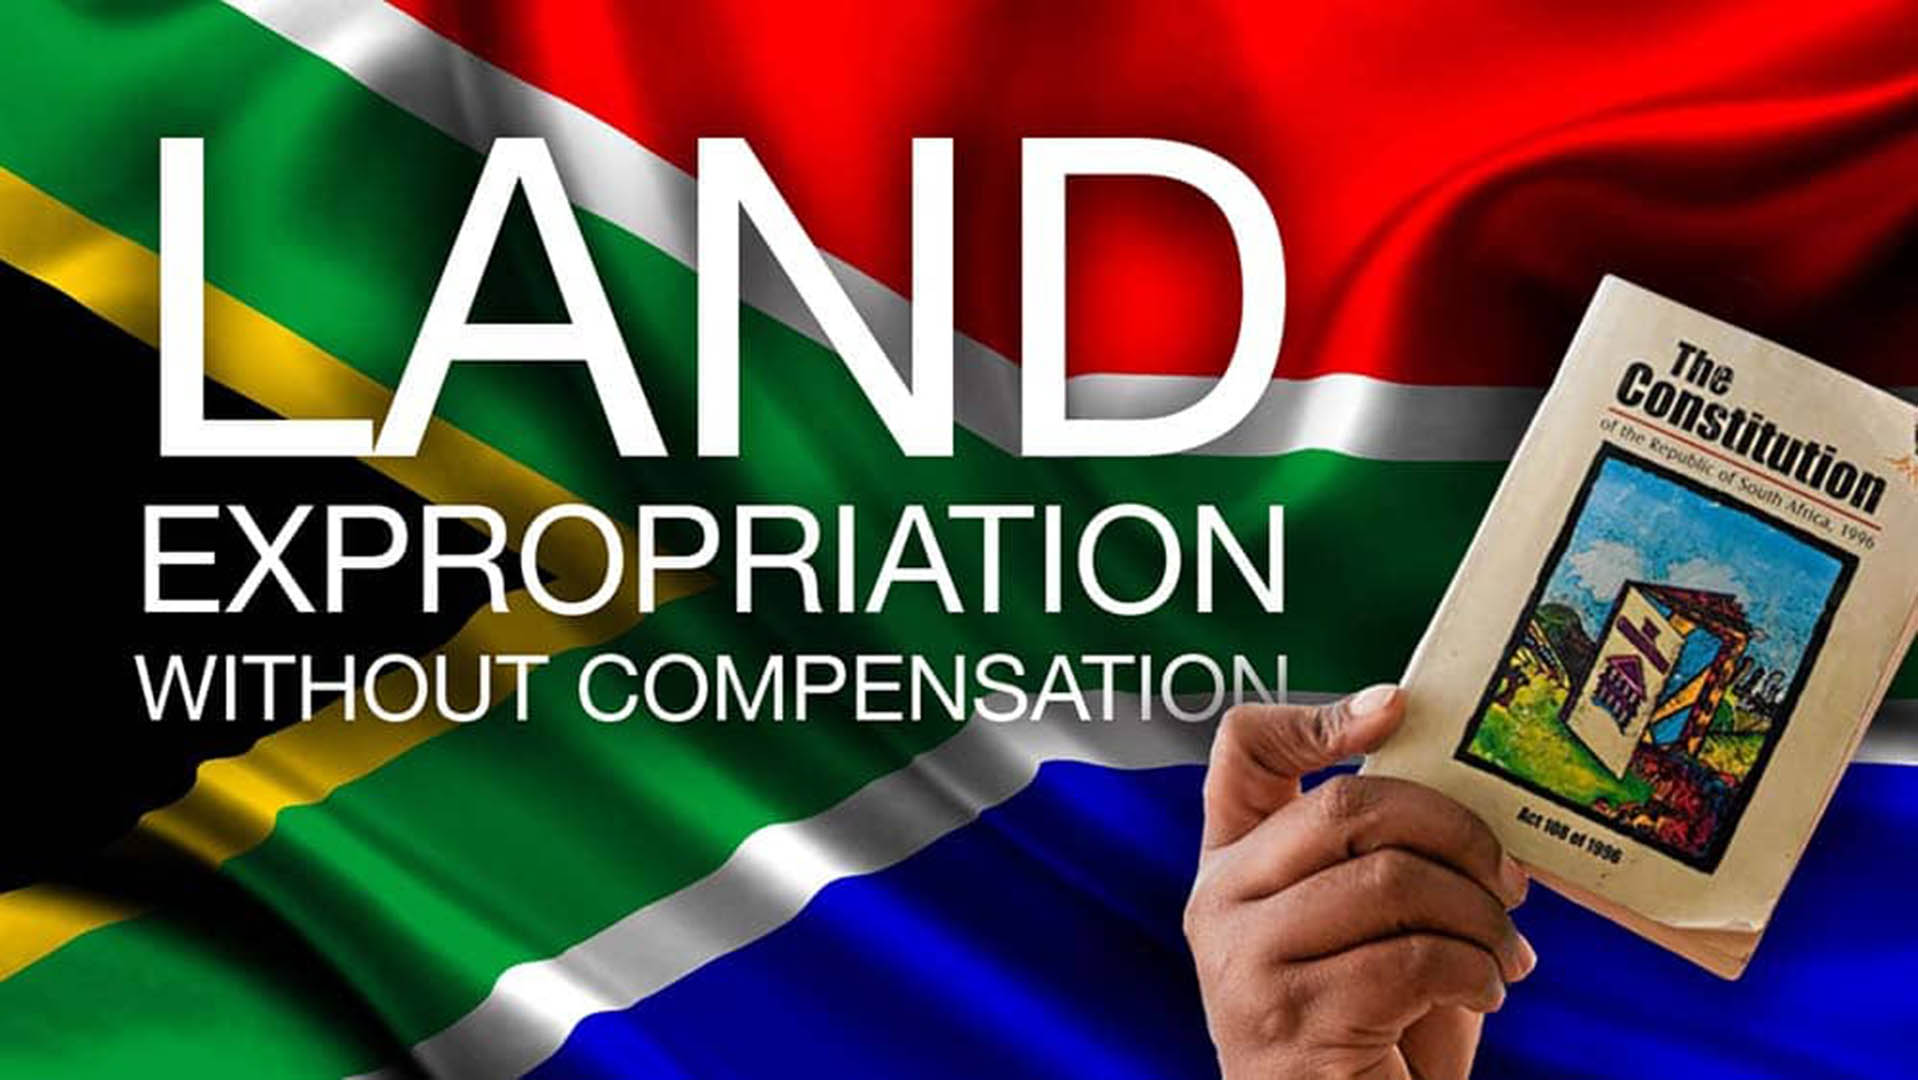 South Africans have until Friday, 13 August 2021 to make submissions on the proposed amendment to section 25 of the Constitution. Photo: Supplied/Food For Mzansi